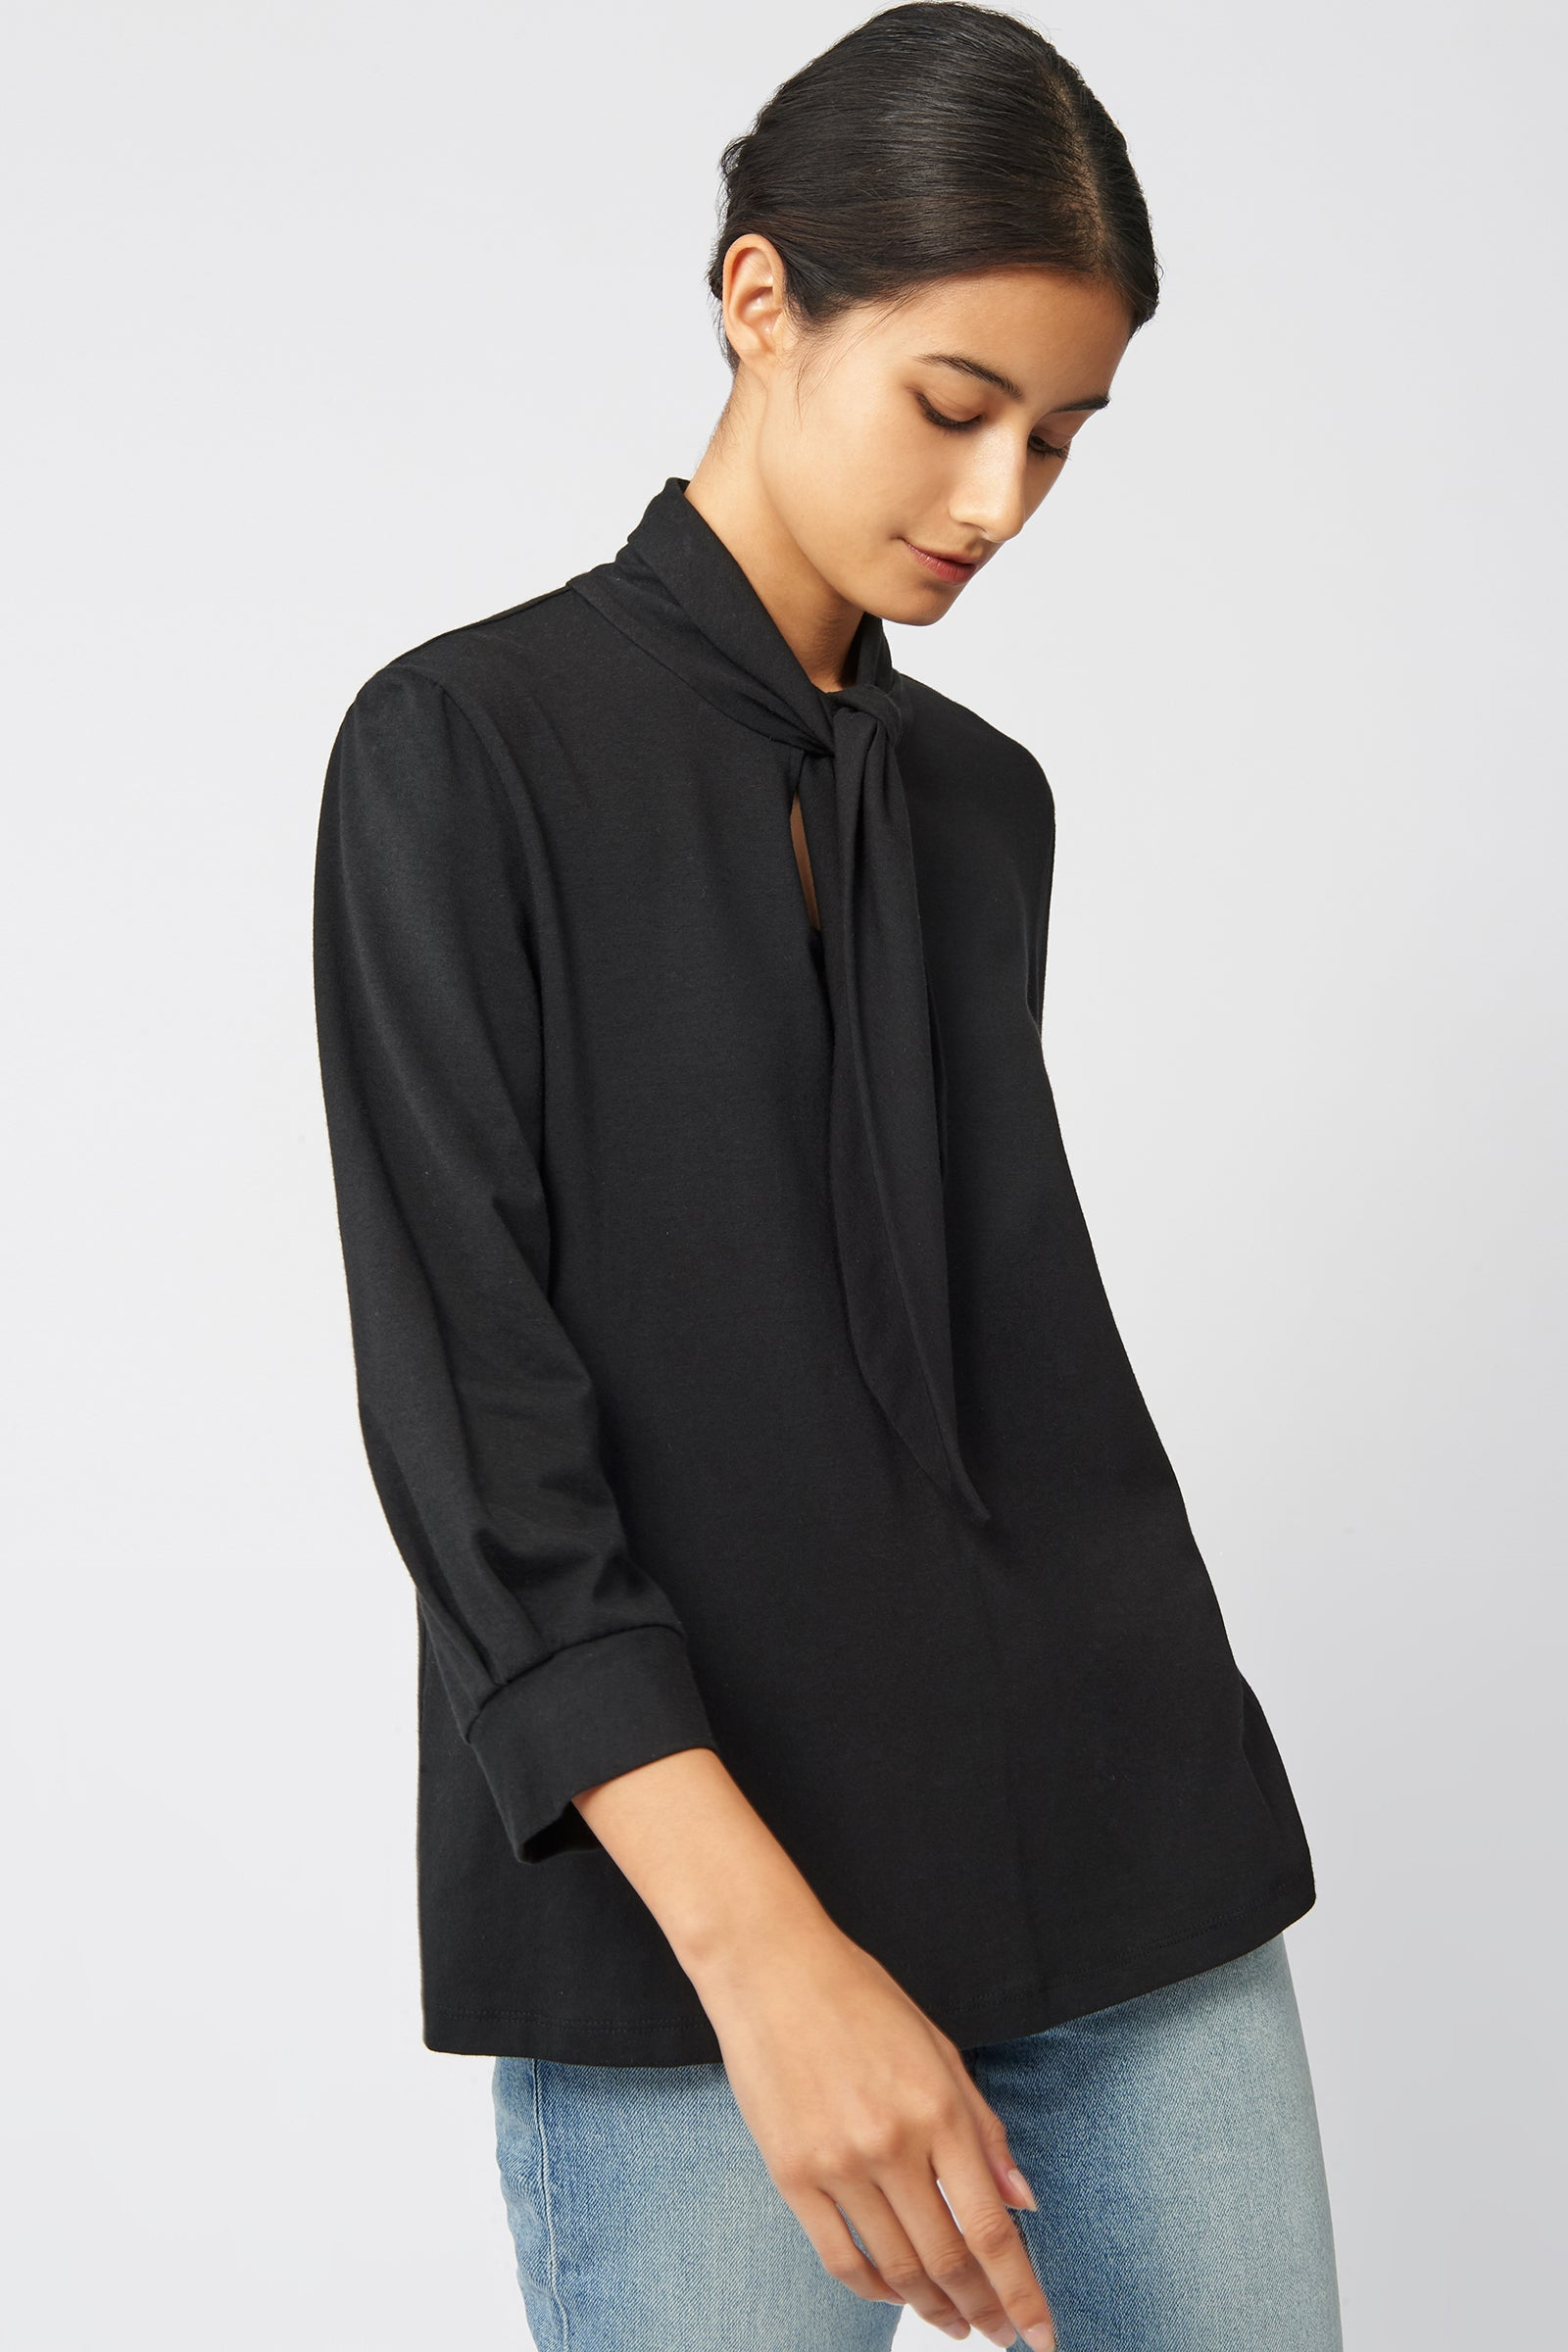 Kal Rieman Tie Neck Top in Black on Model Front Side View